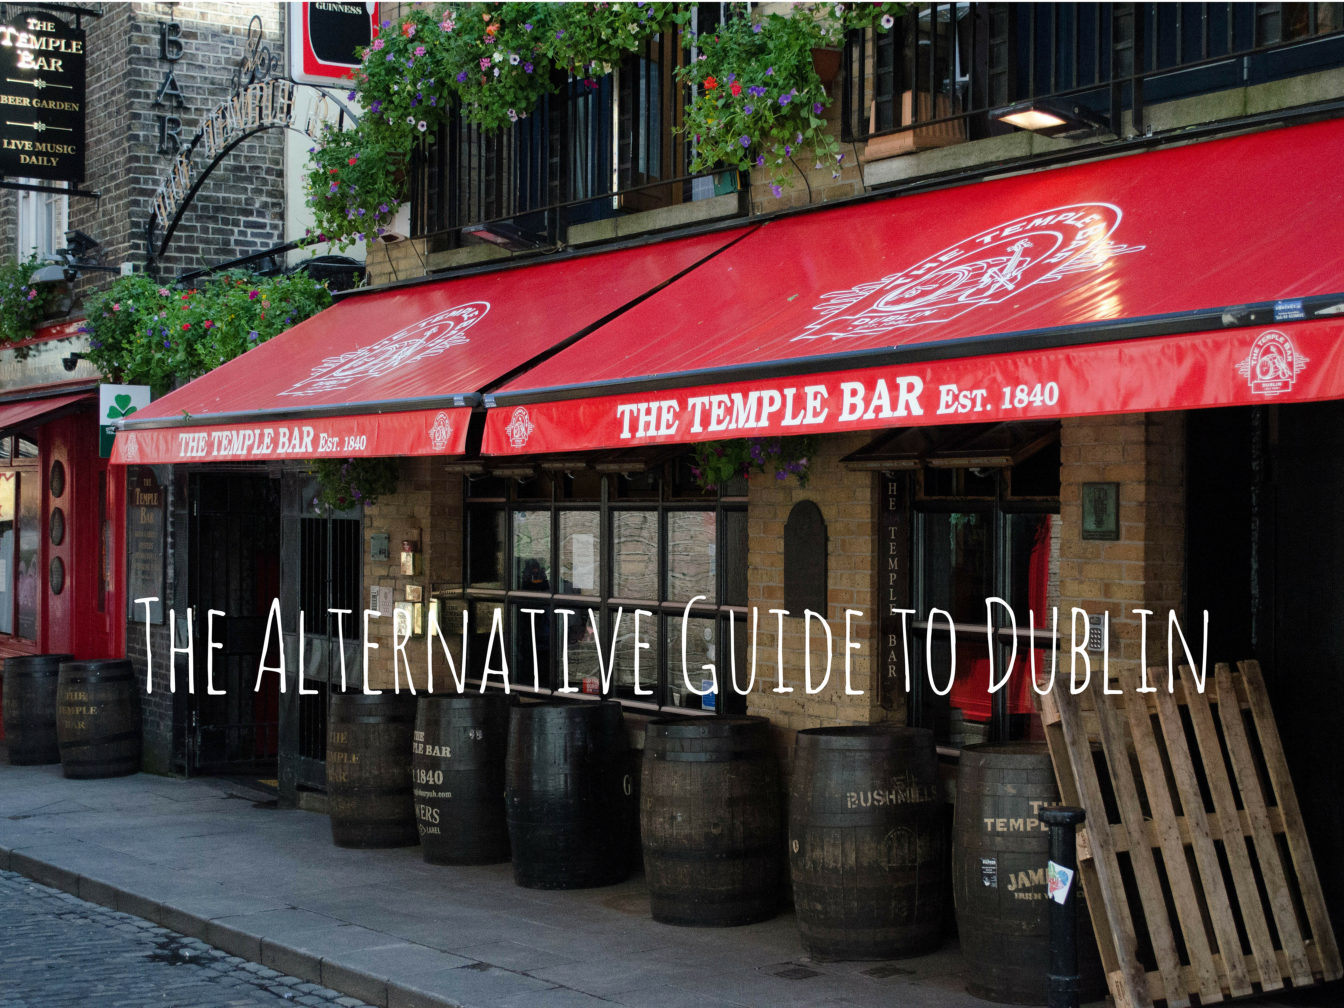 The alternative guide to Dublin